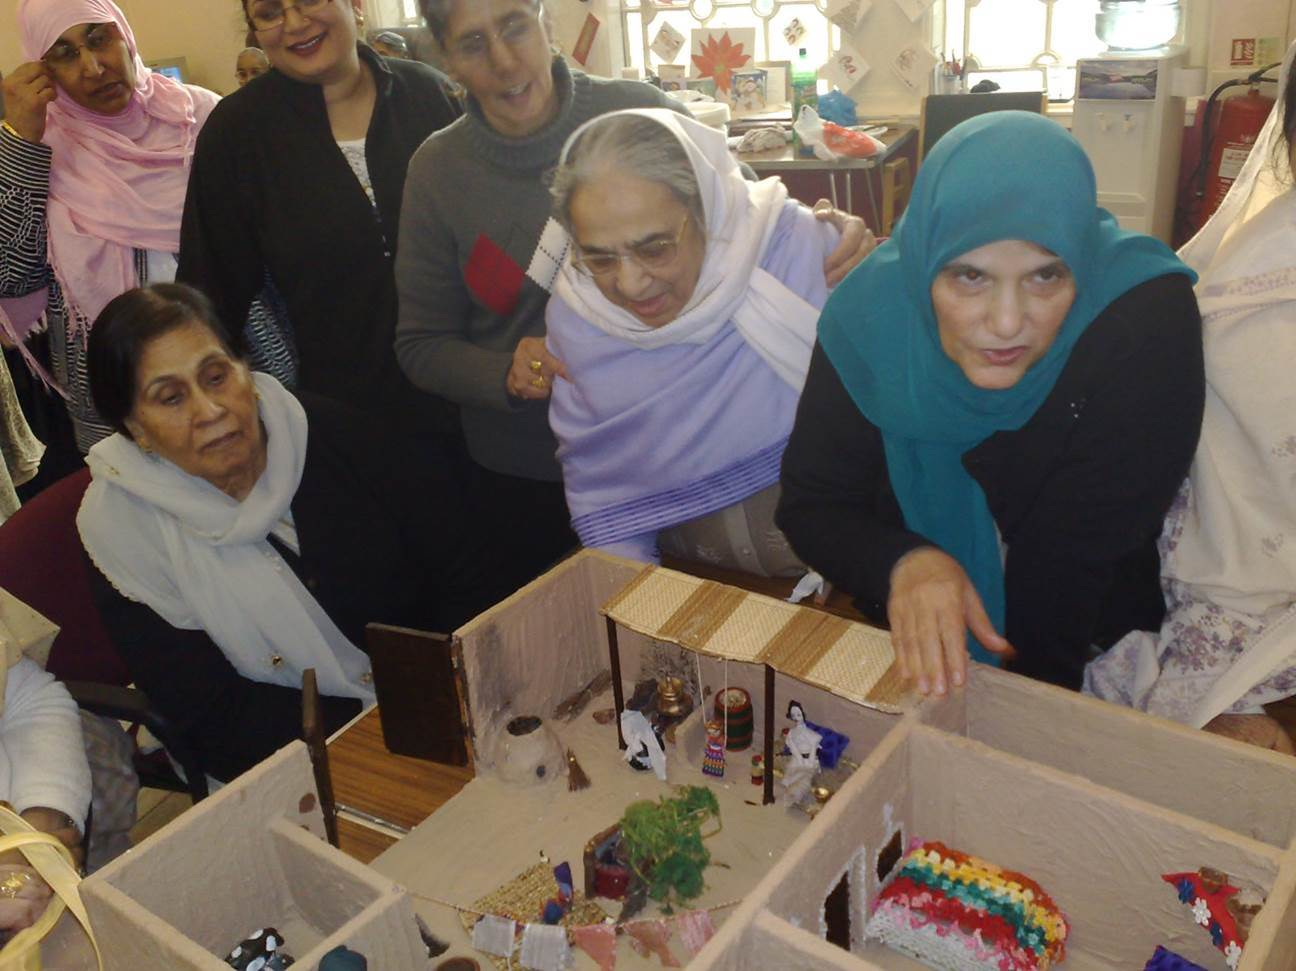 Model House made by women from South Asia, Glasgow Women's Library